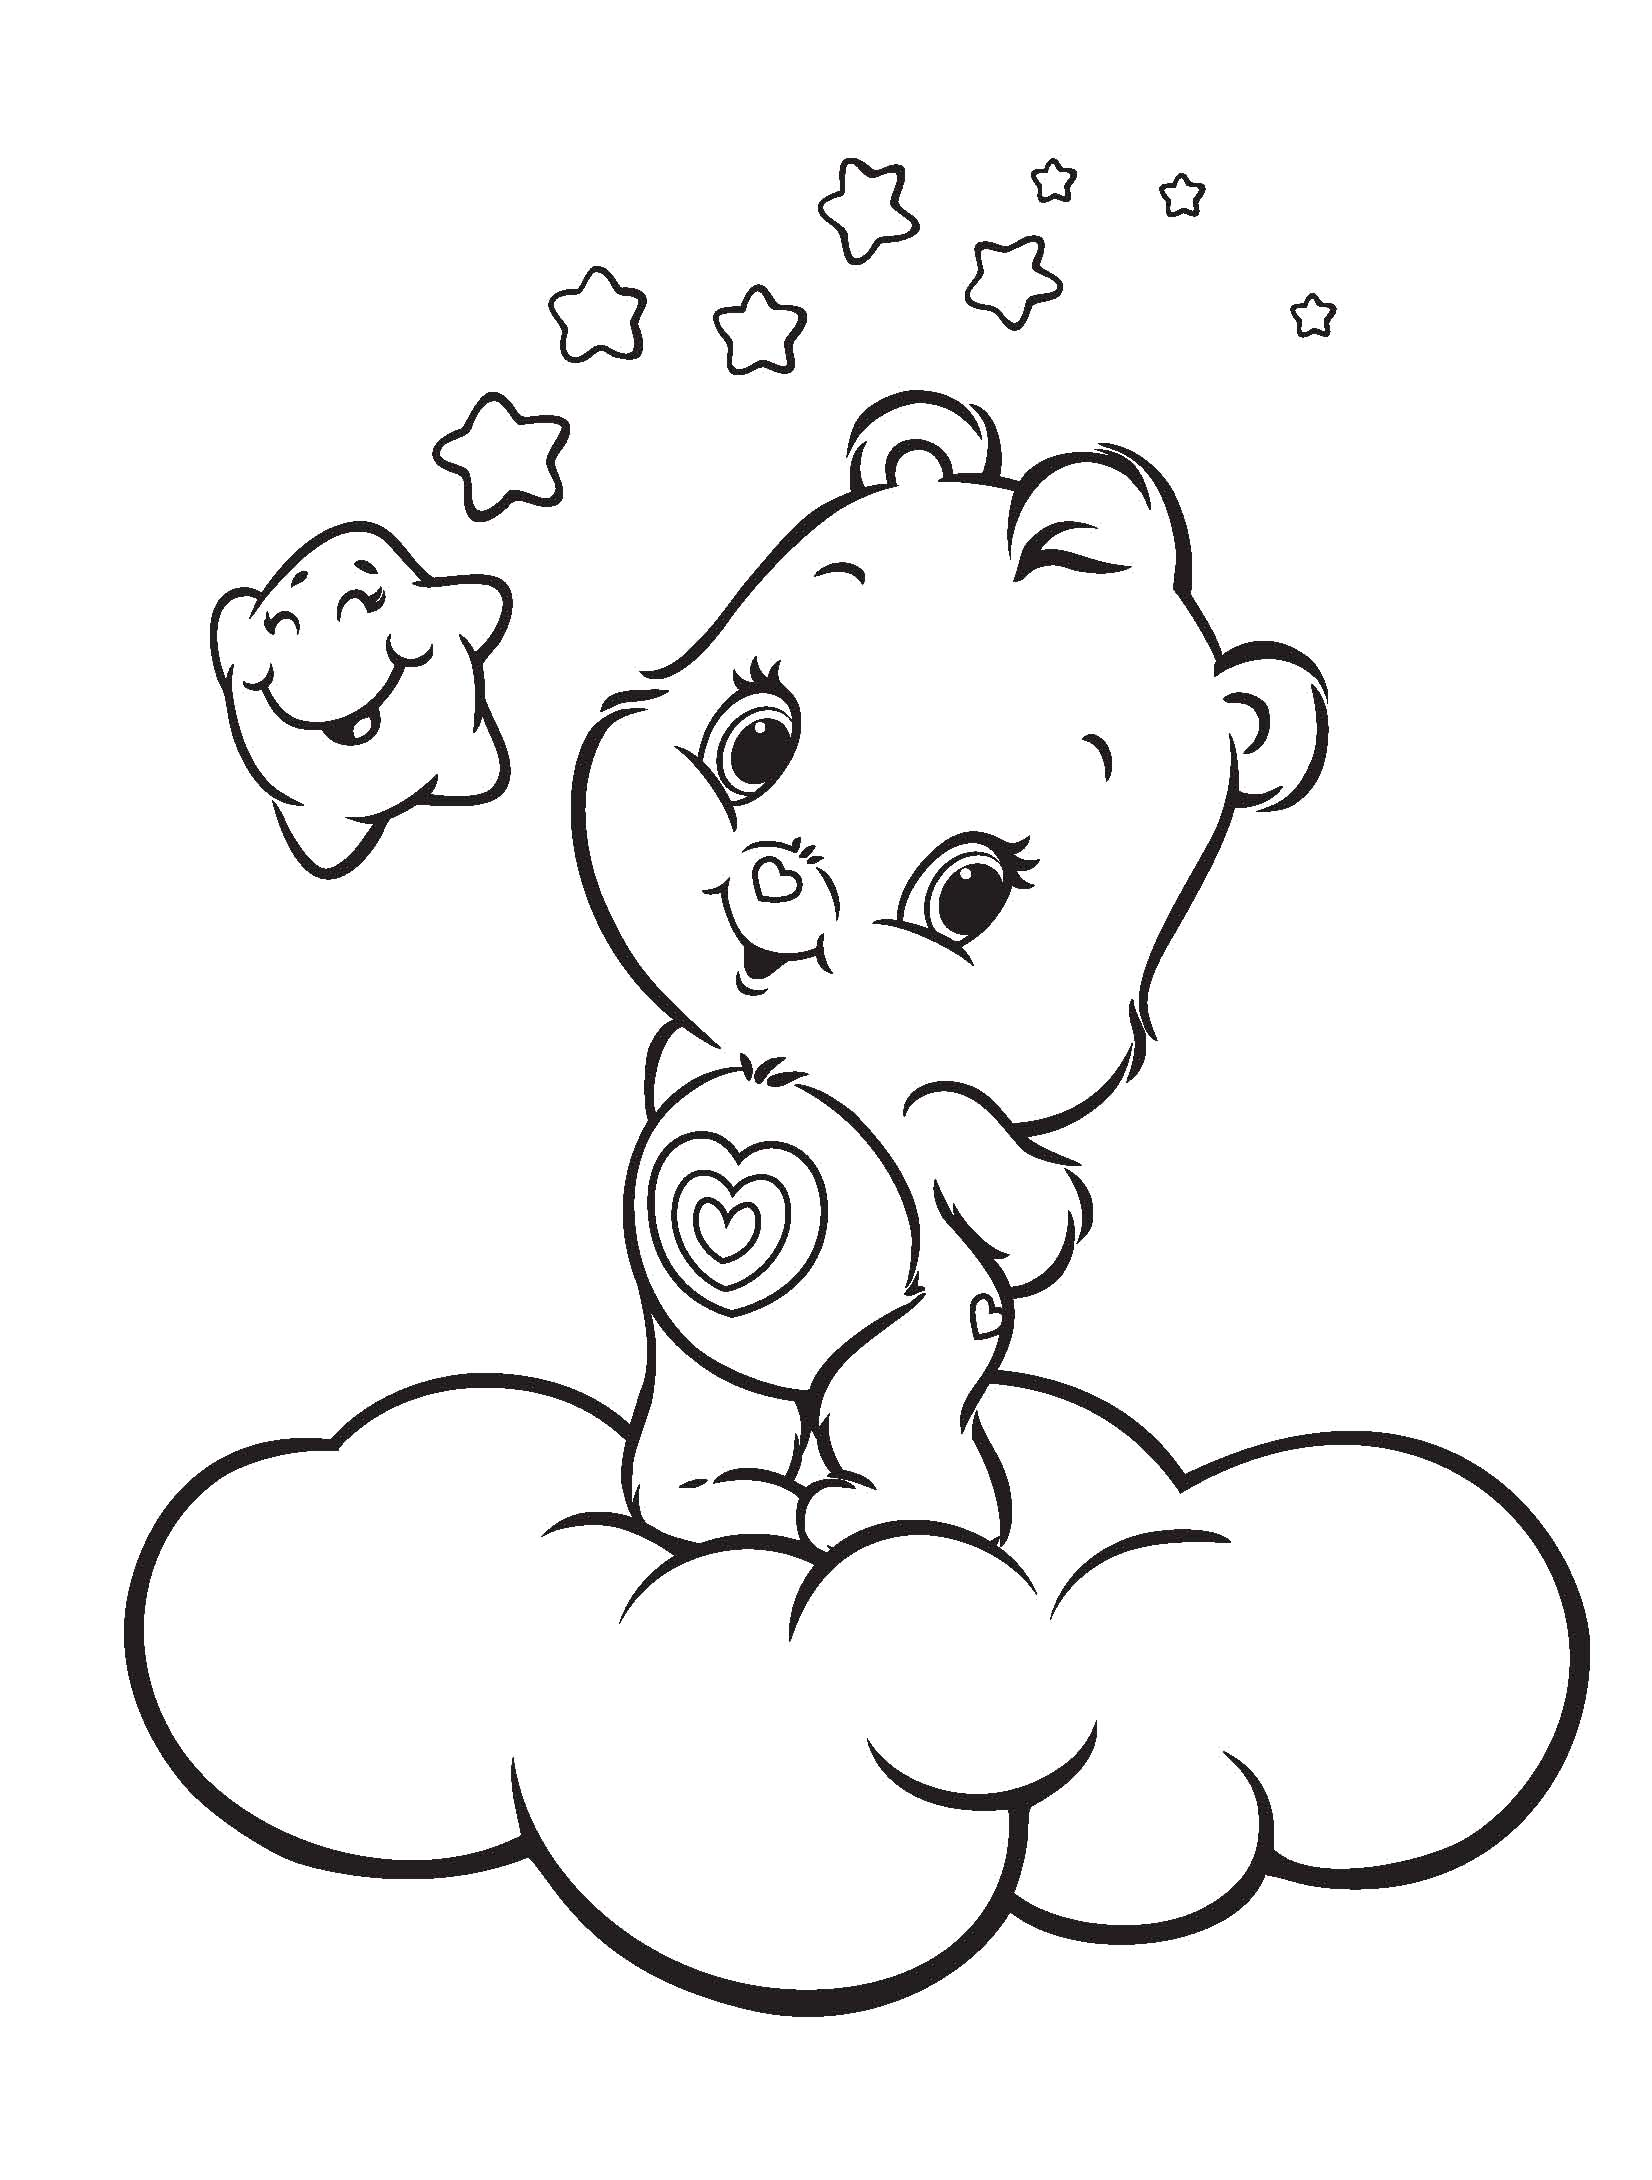 cloudbabies coloring pages for kids - photo#32